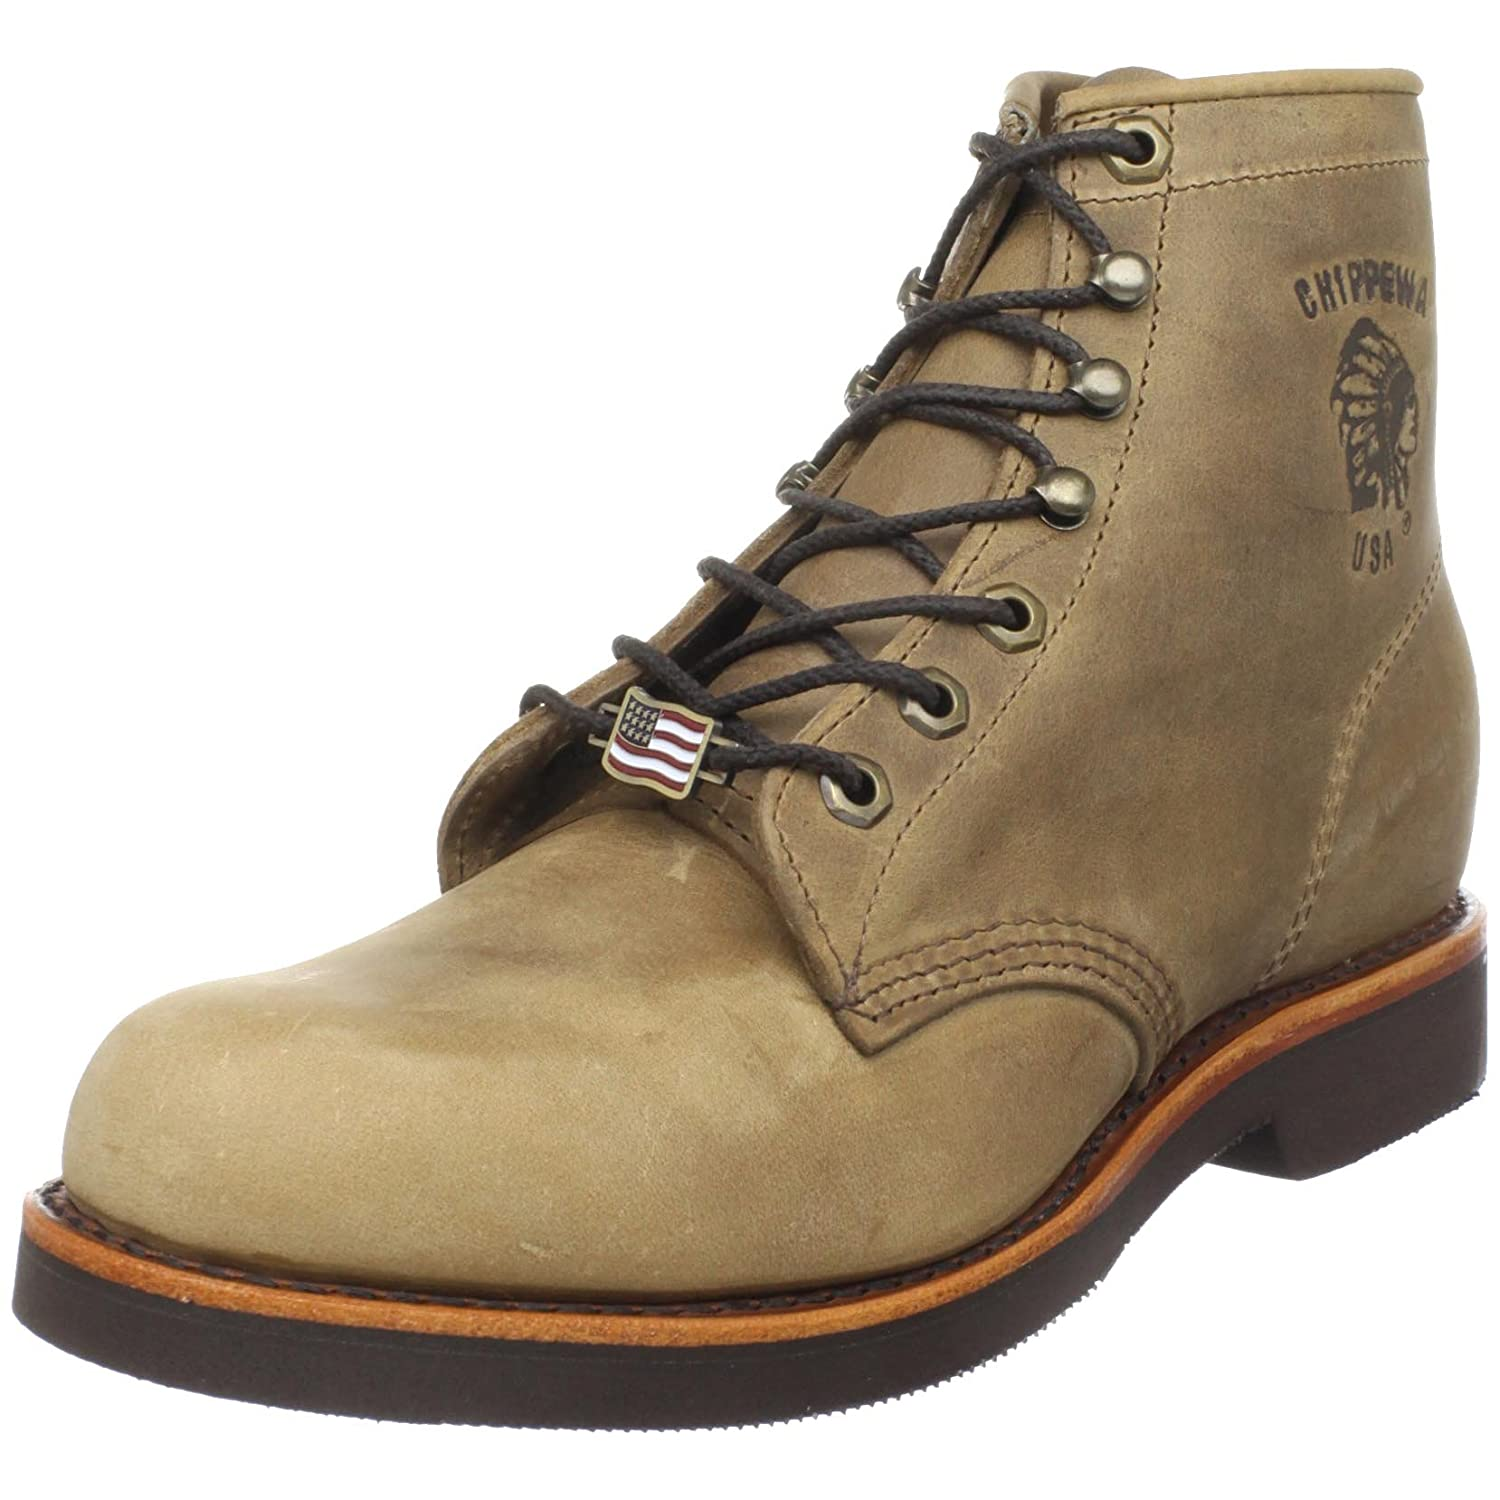 42a284898f4 Roosh V Forum - Can I get some opinions on these boots?